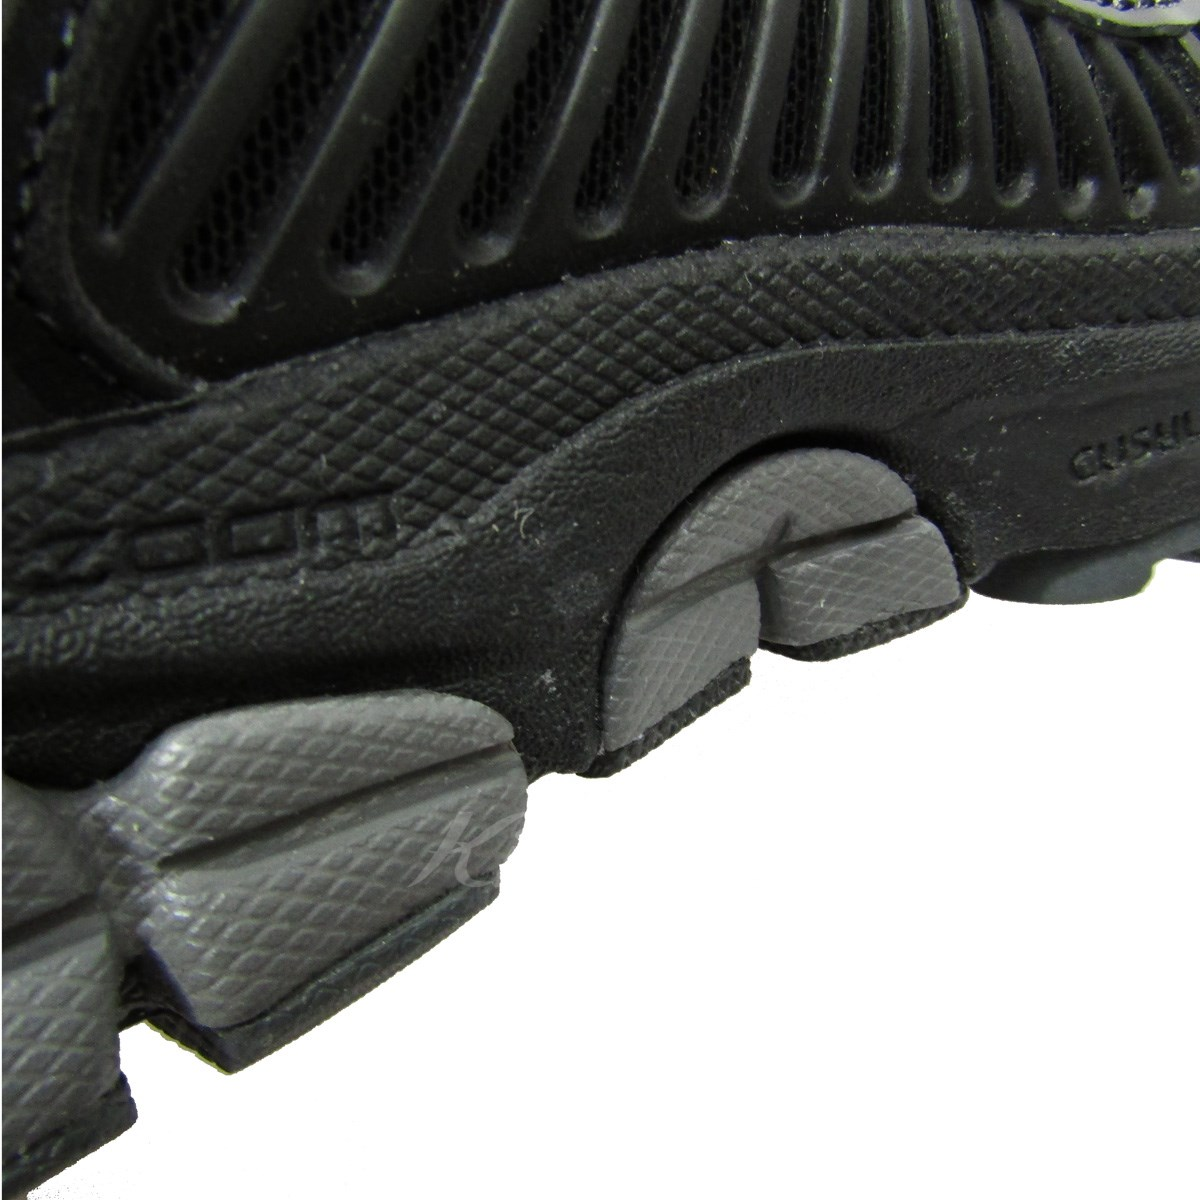 a7bc59a68e65 NIKE X A COLD WALL NIKE ZOOM VOMERO 5   ACW at3152-001 ズームボメロブラックサイズ  27 5  (Ney Kia cold wall)